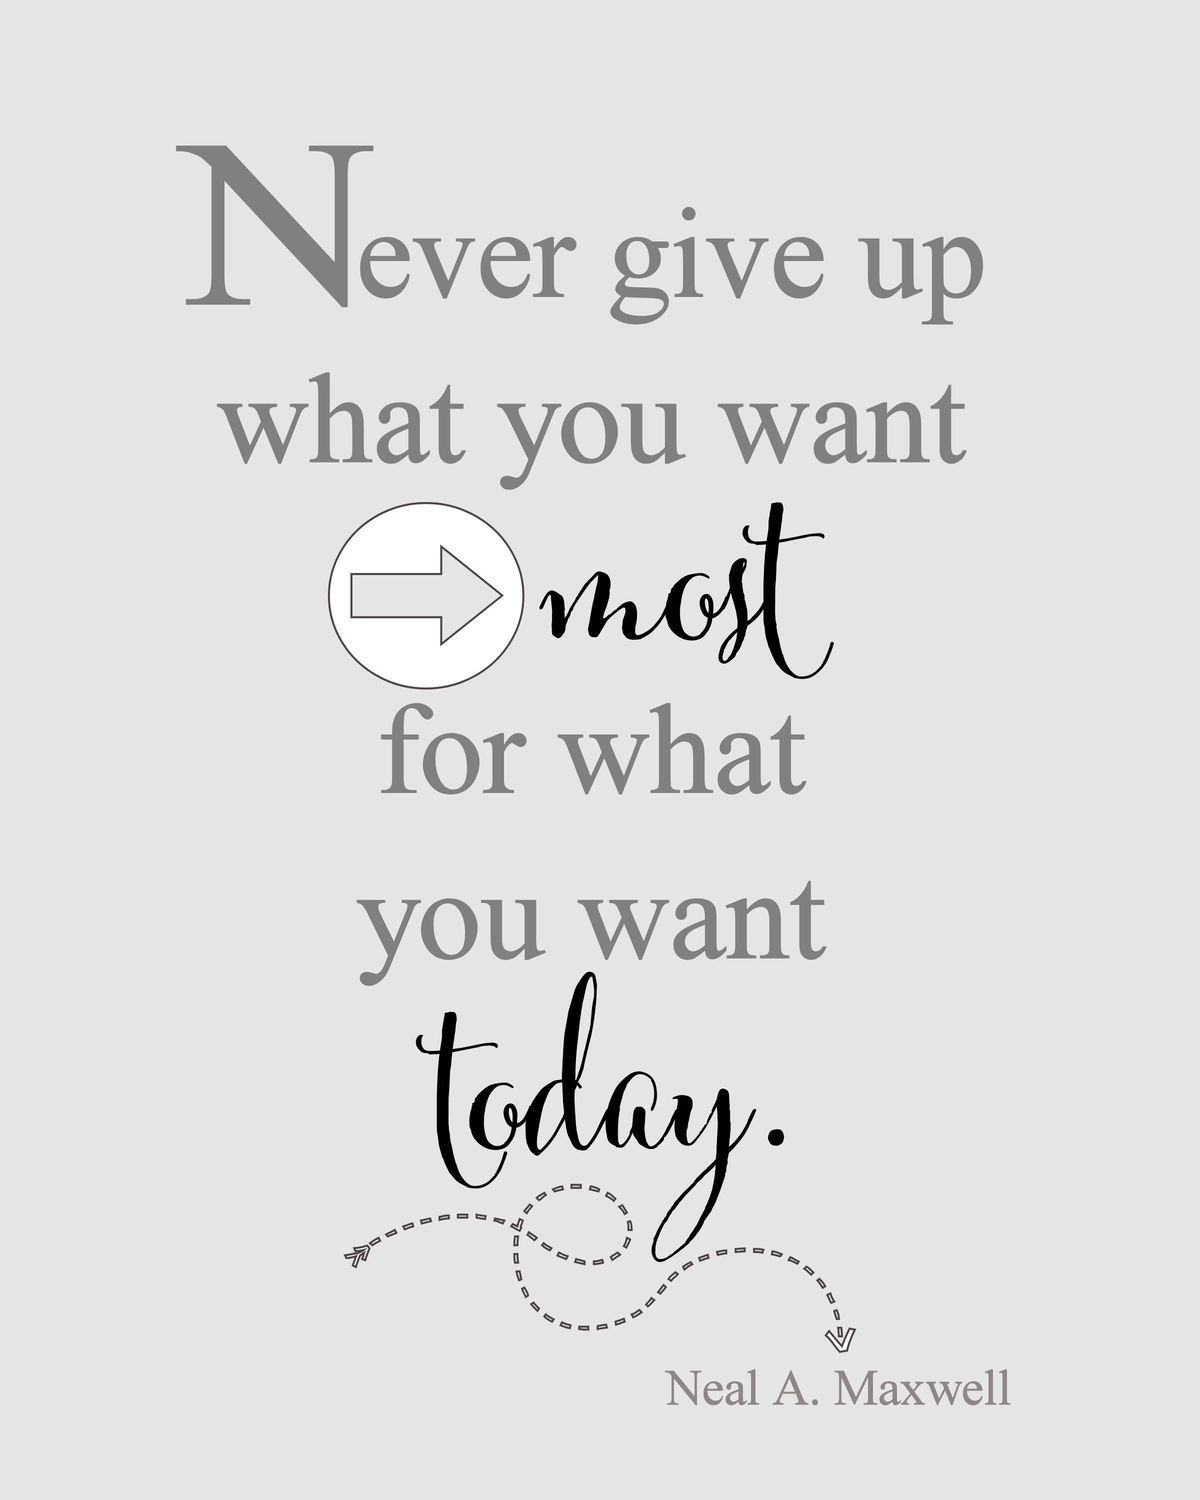 Never give up what you want most, for what you want today FREE print. Use as decor in a frame or it would make a great gift.